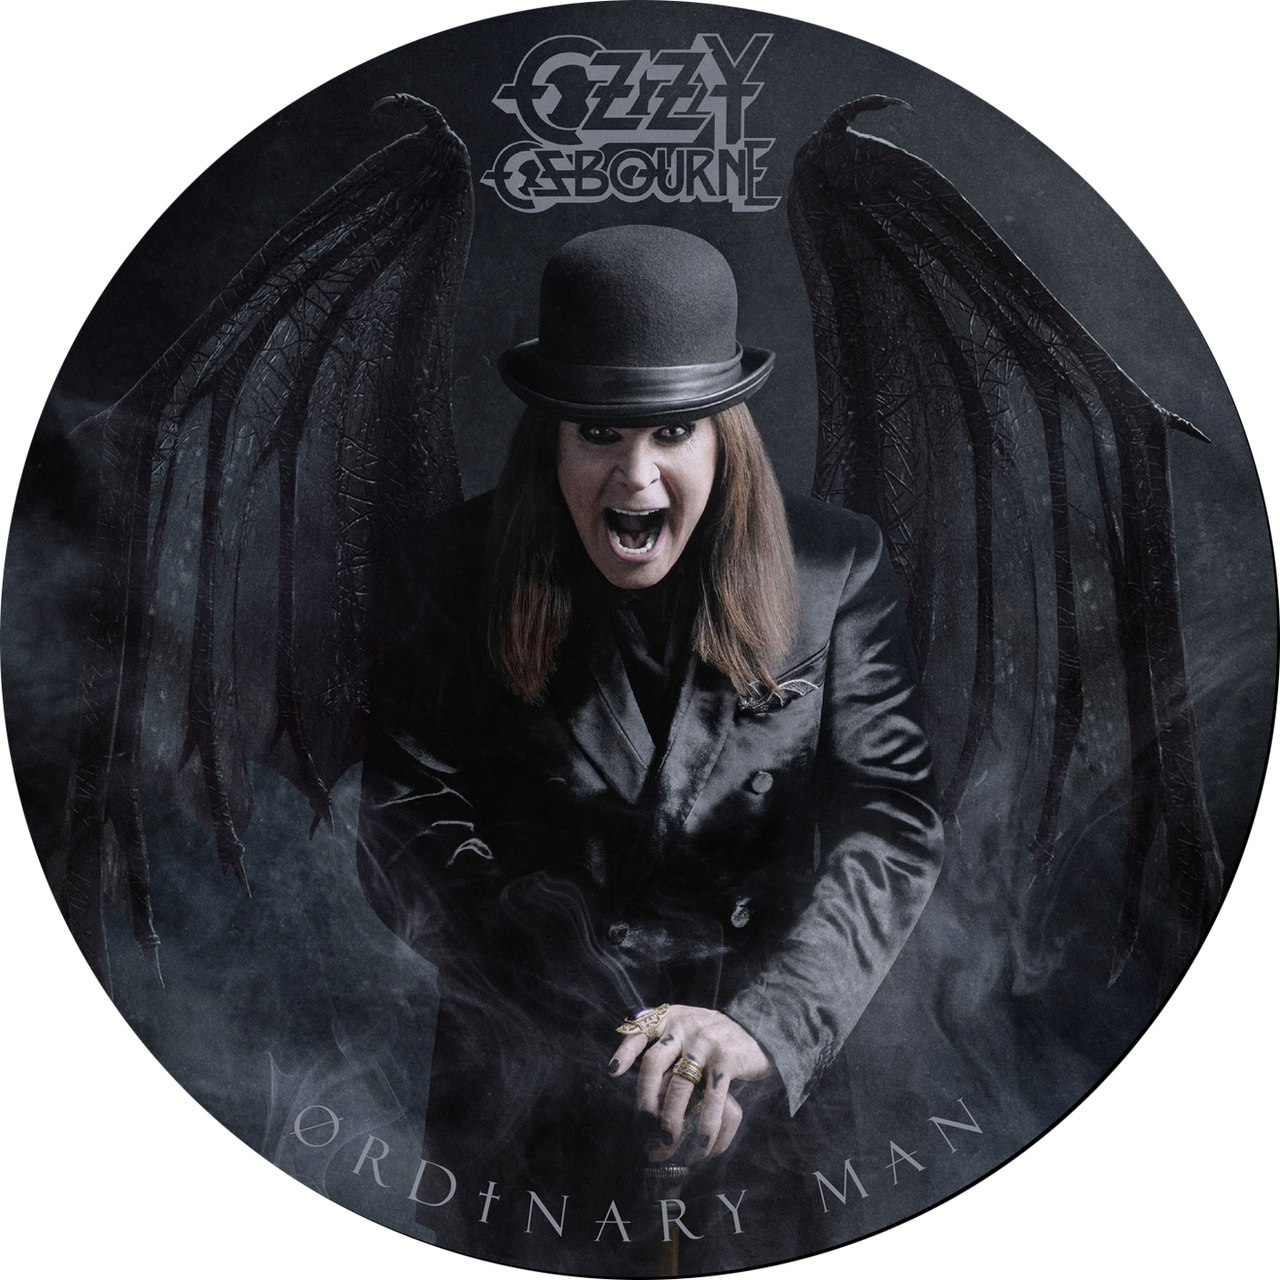 Ozzy Osbourne – Ordinary Man [LP] (Picture Disc)